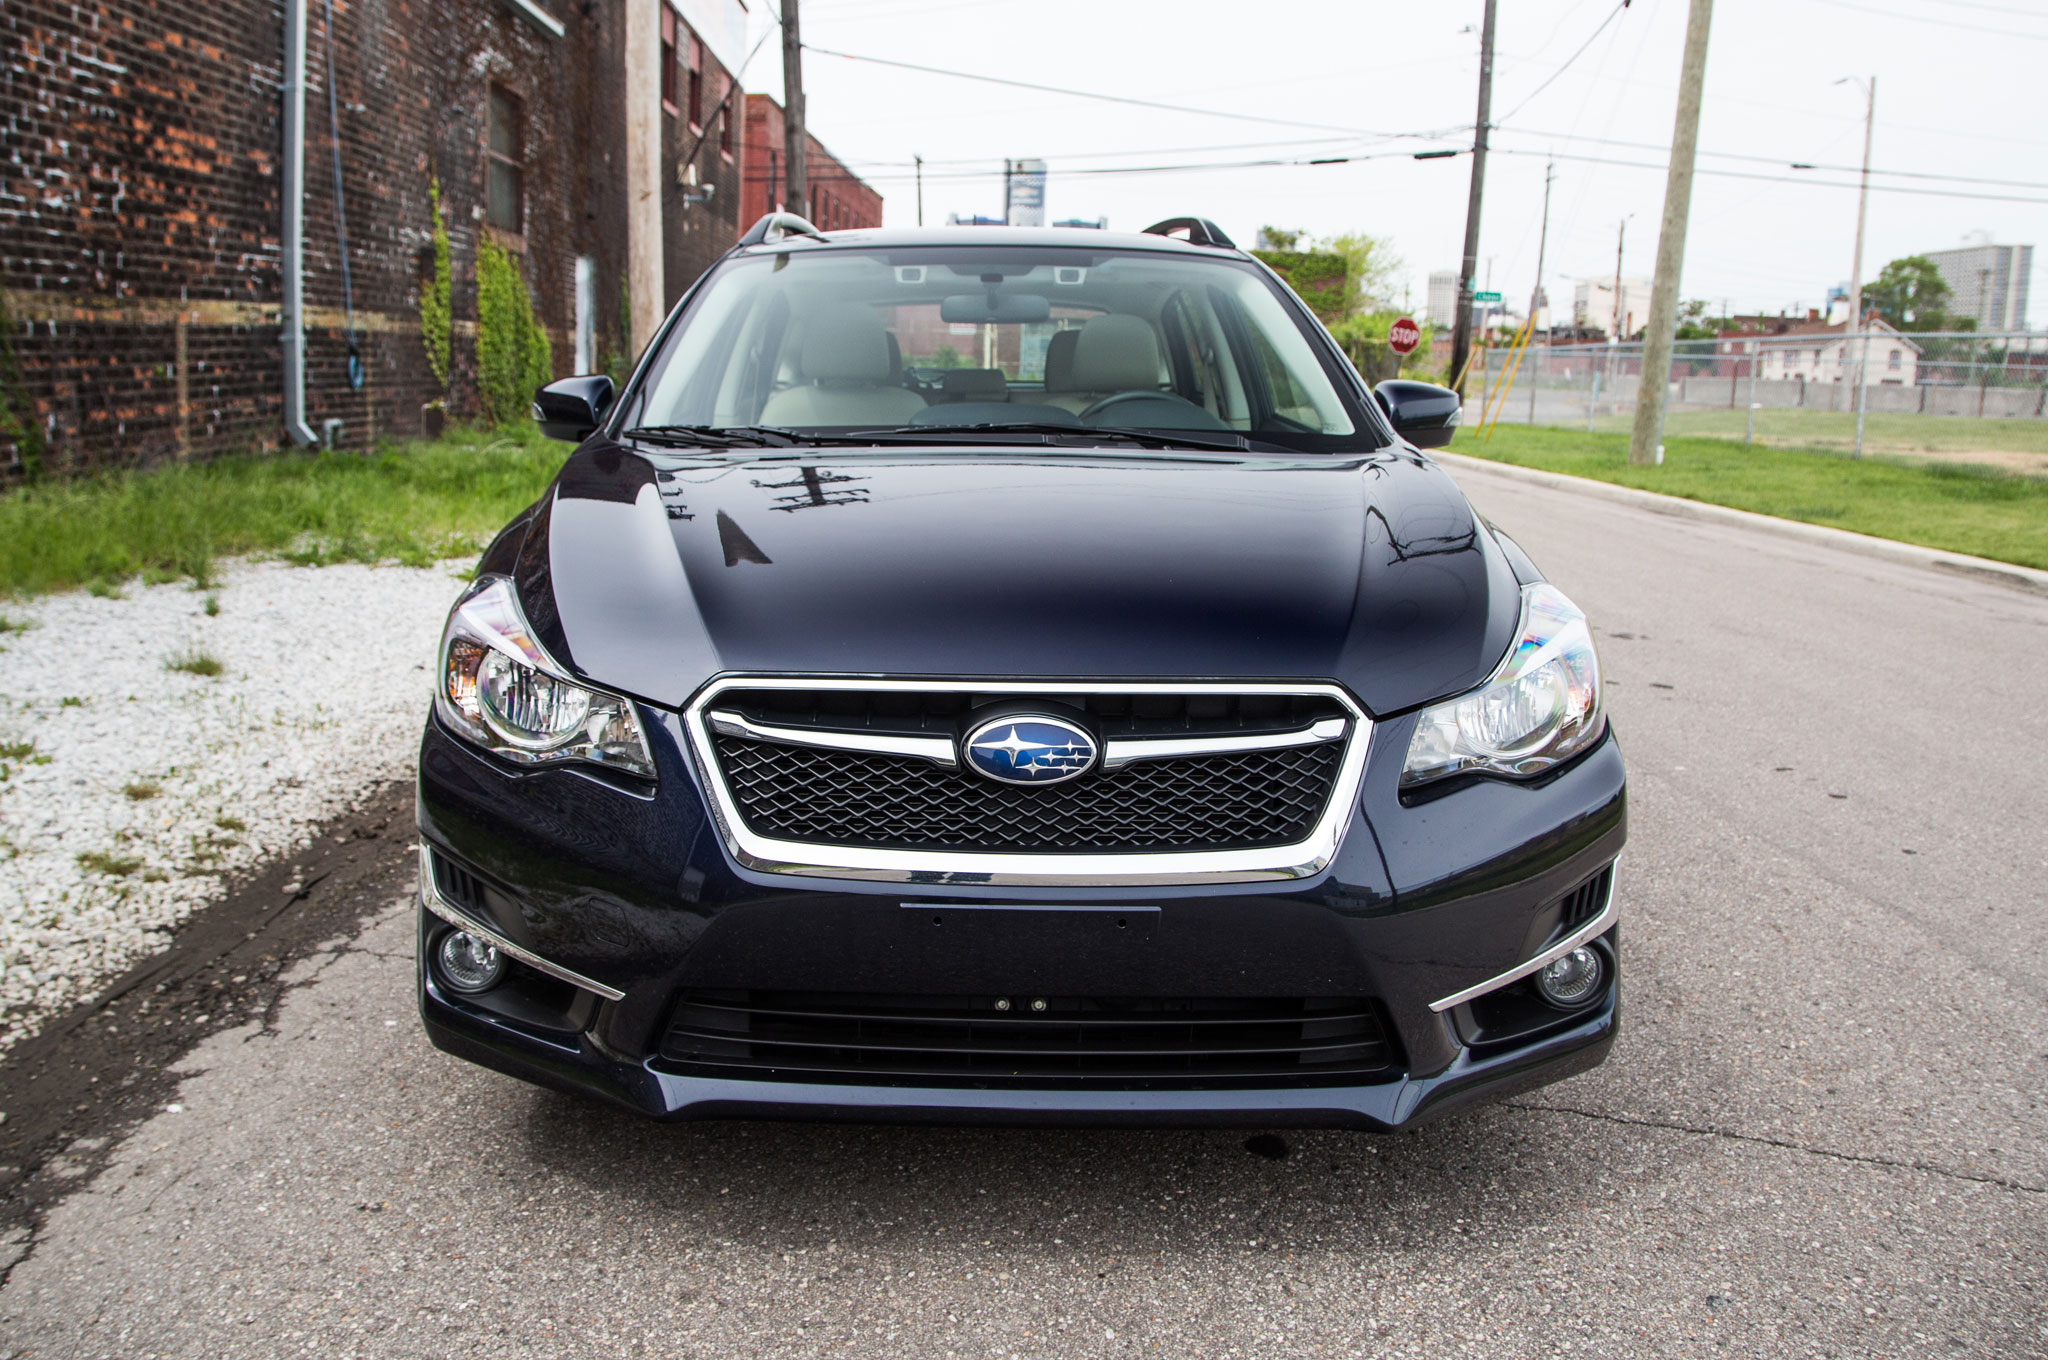 2015 subaru impreza 2.0i sport limited review